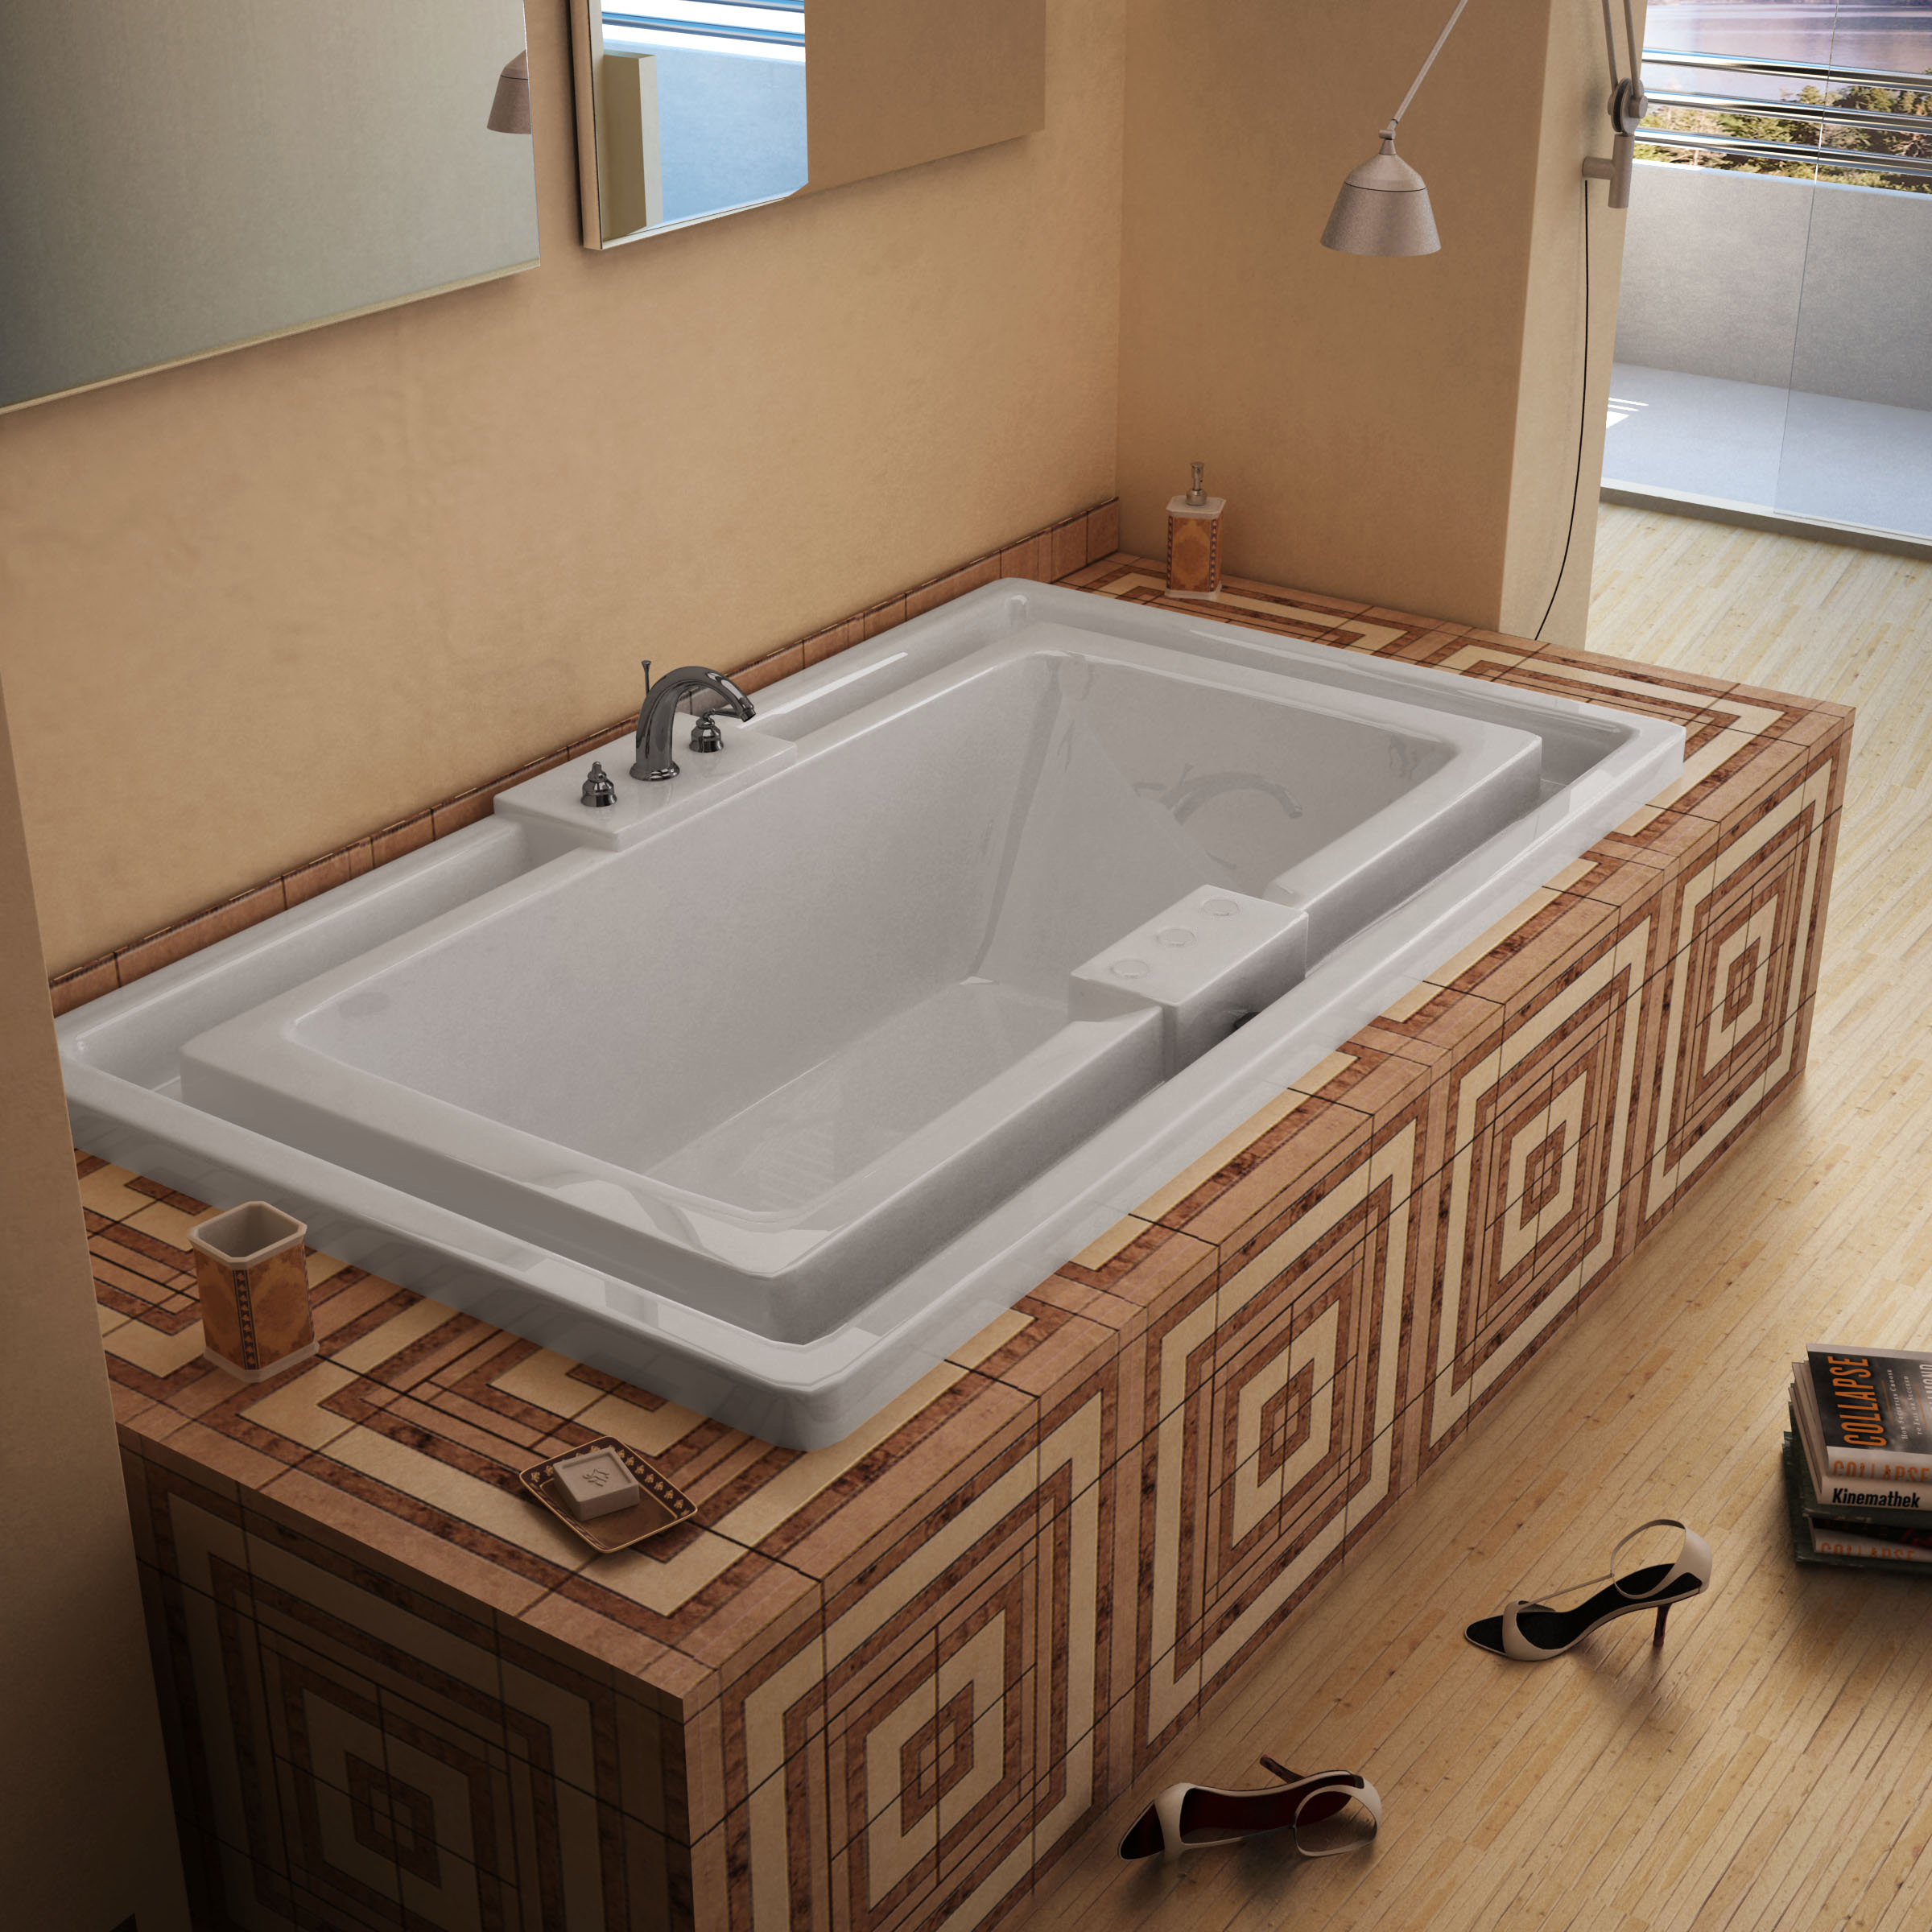 Whirlpool Tub With Heater | Sevenstonesinc.com